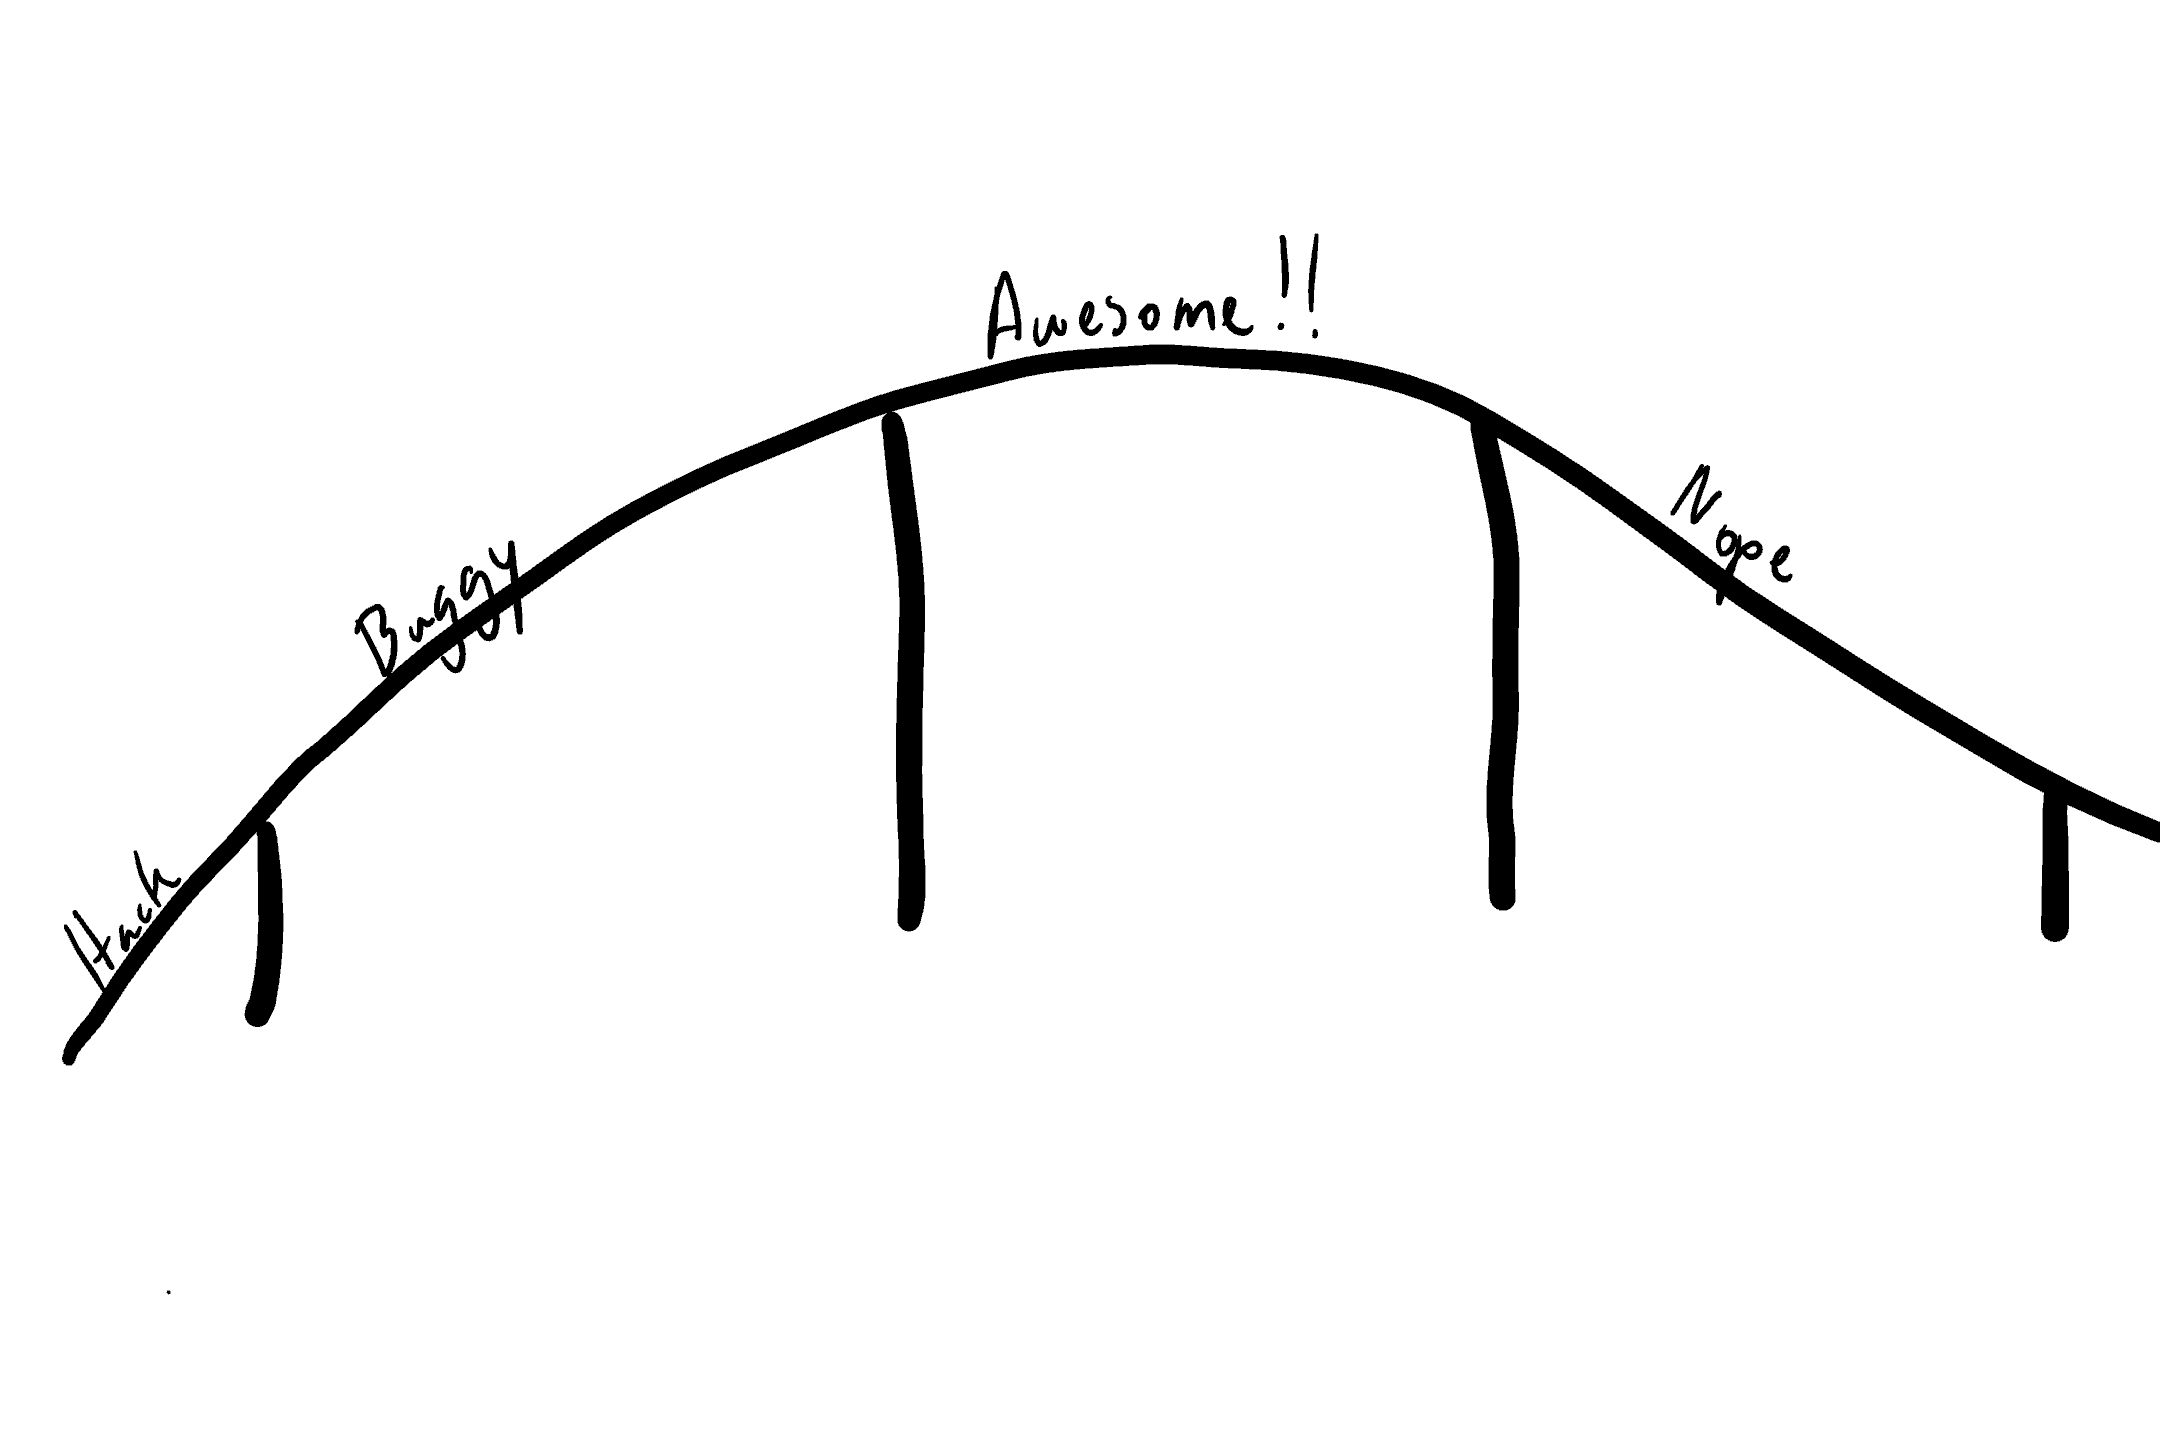 Retelling: The Awesome Curve